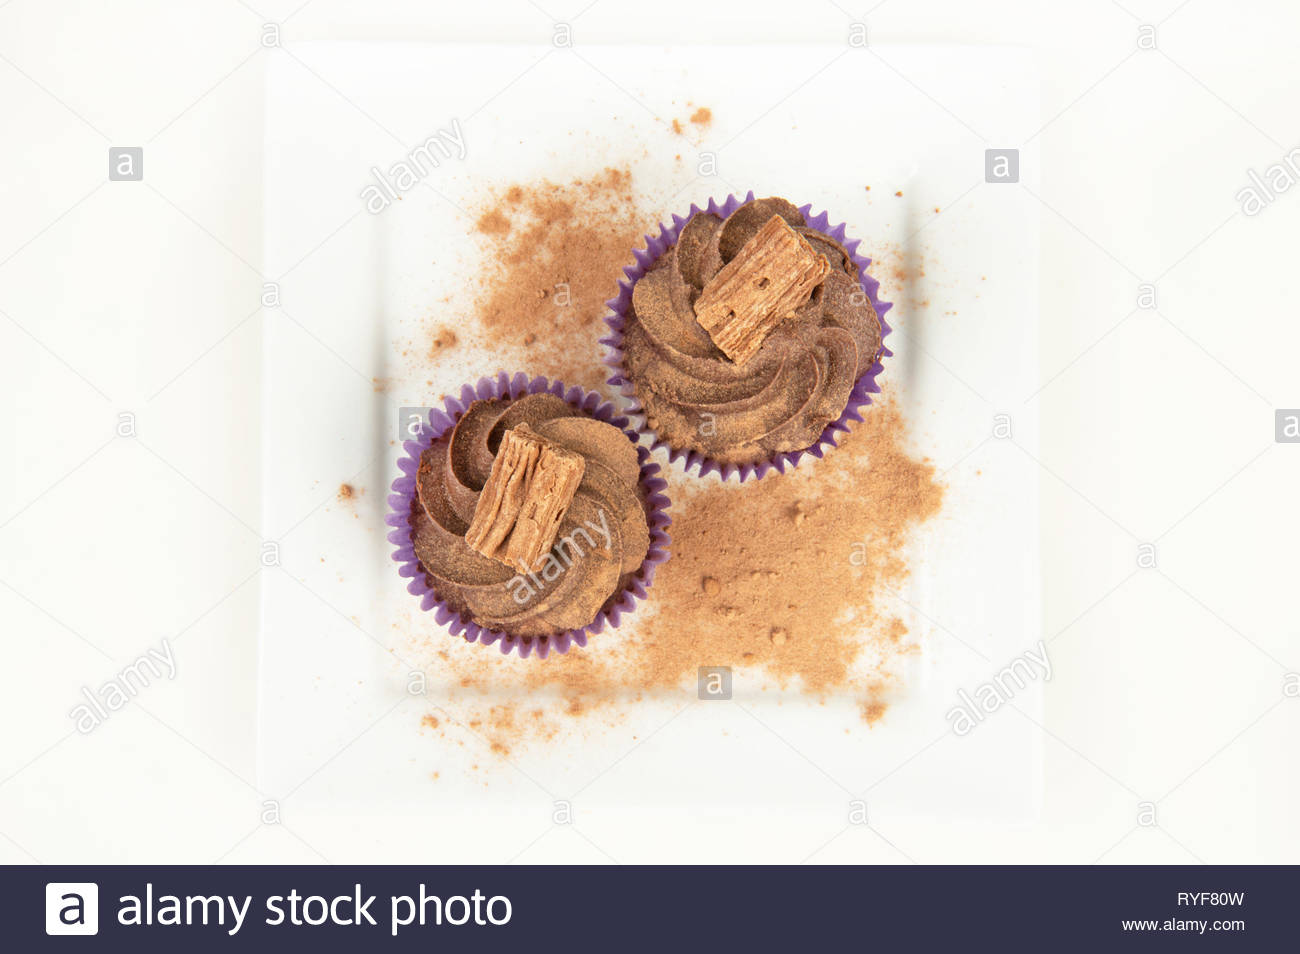 Two small cakes on a plate with cocoa powder - Stock Image